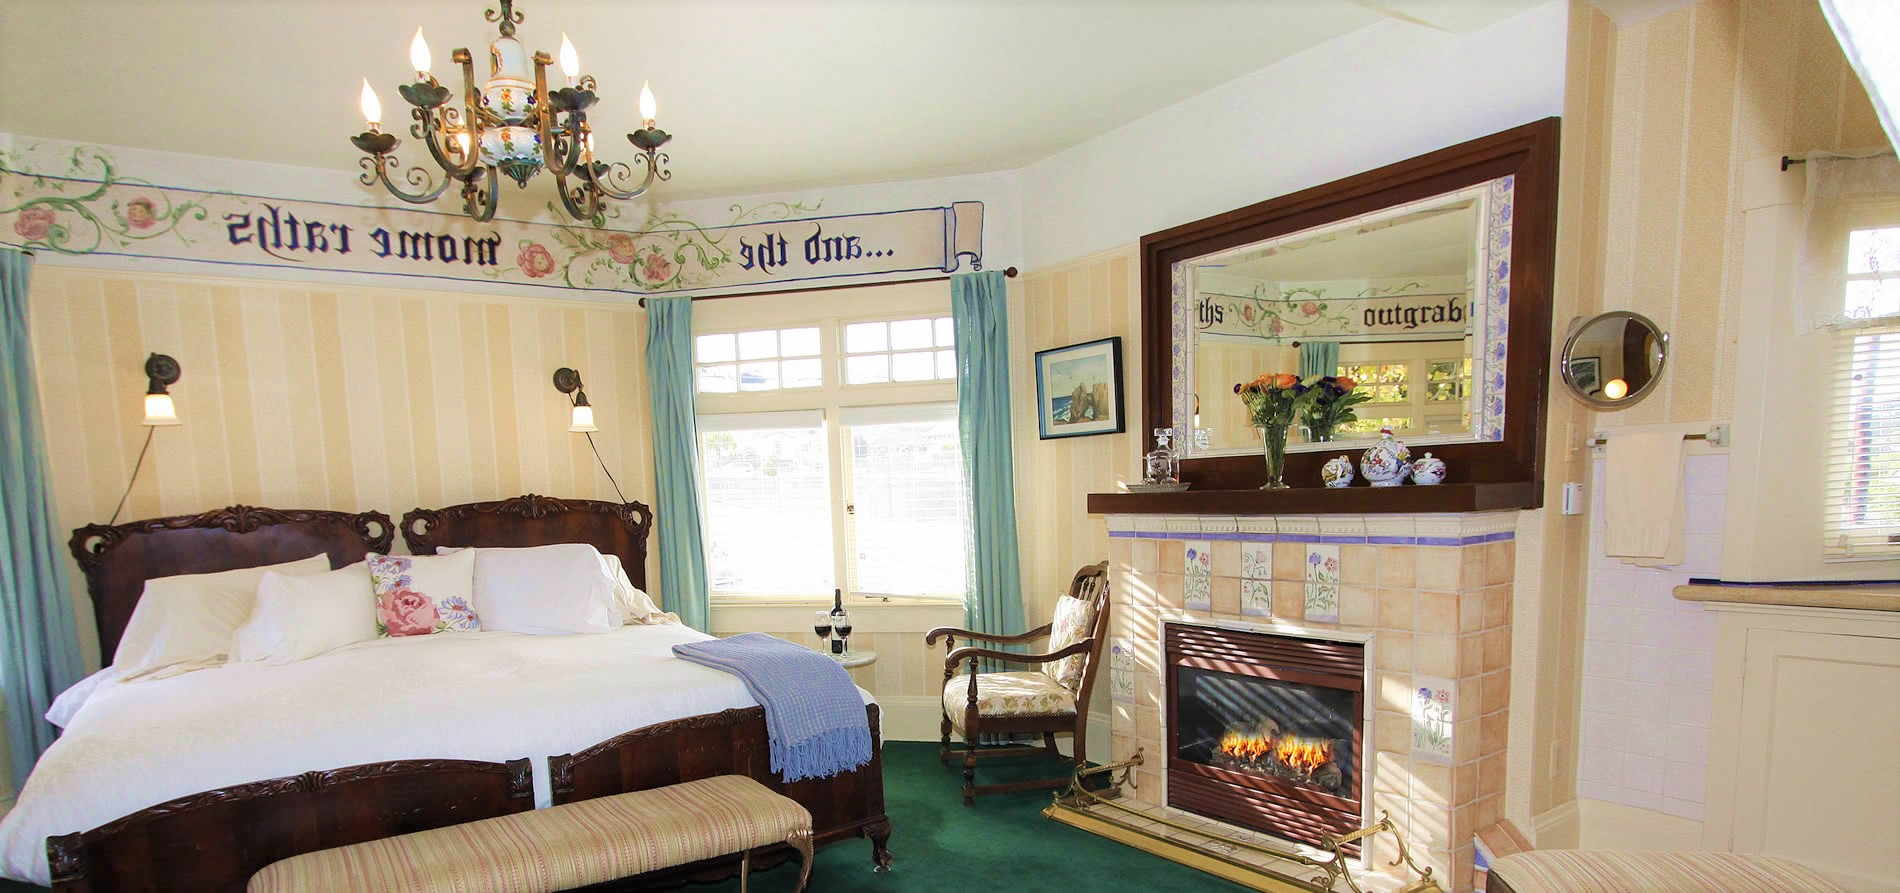 monterey bed and breakfast guestroom with fireplace, bed and chair